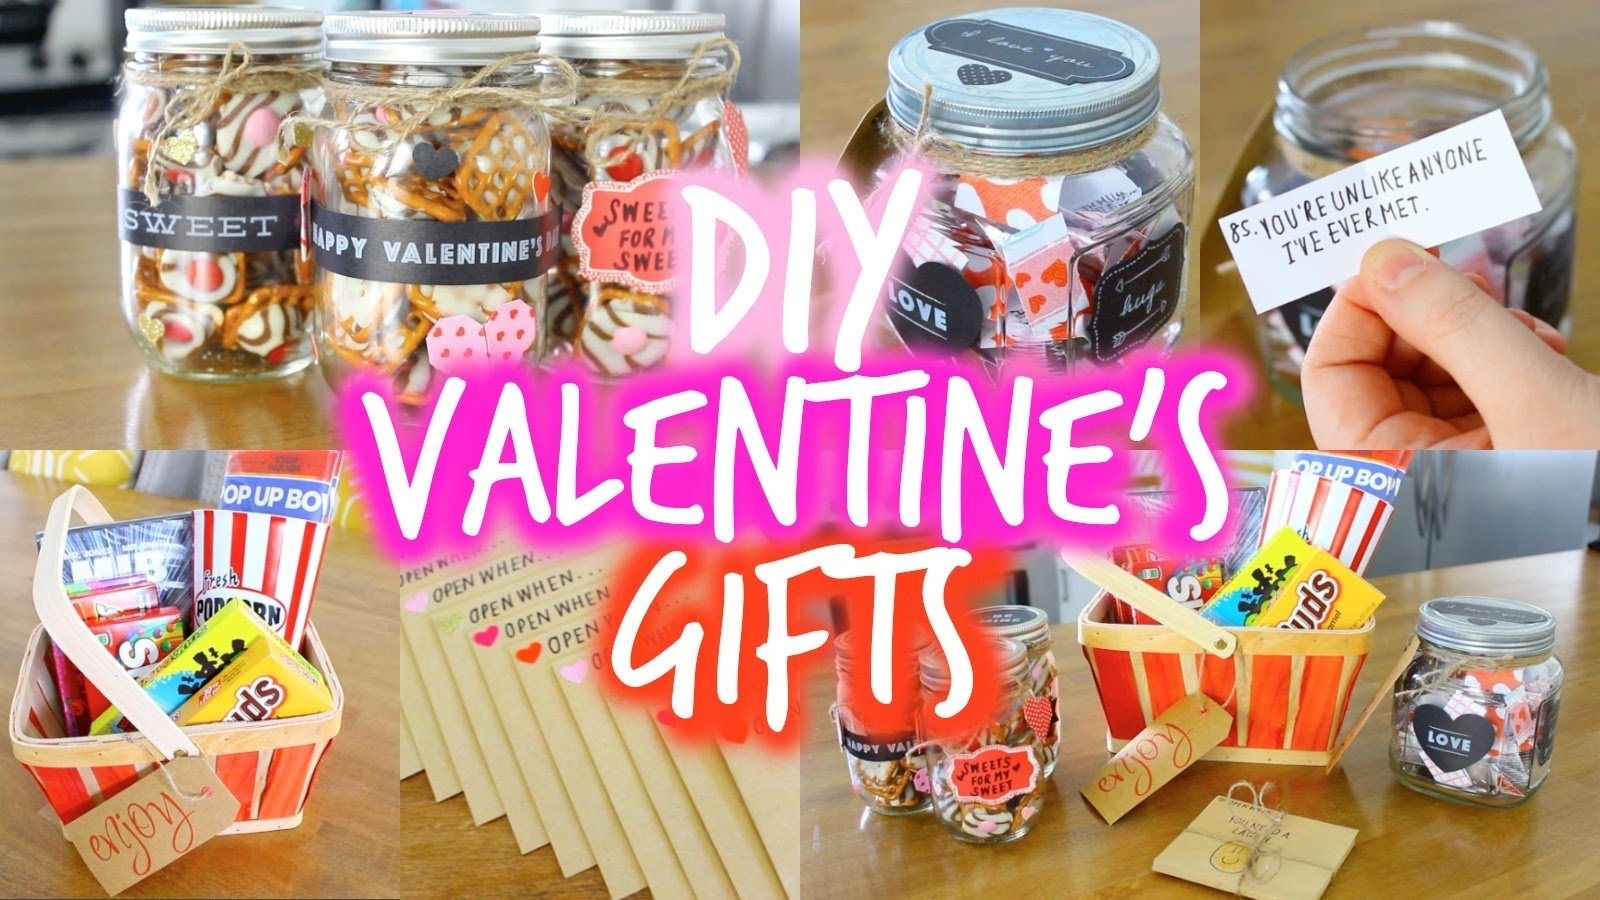 10 Attractive Cute Gift Ideas For Your Boyfriend easy diy valentines day gift ideas for your boyfriend youtube 30 2020